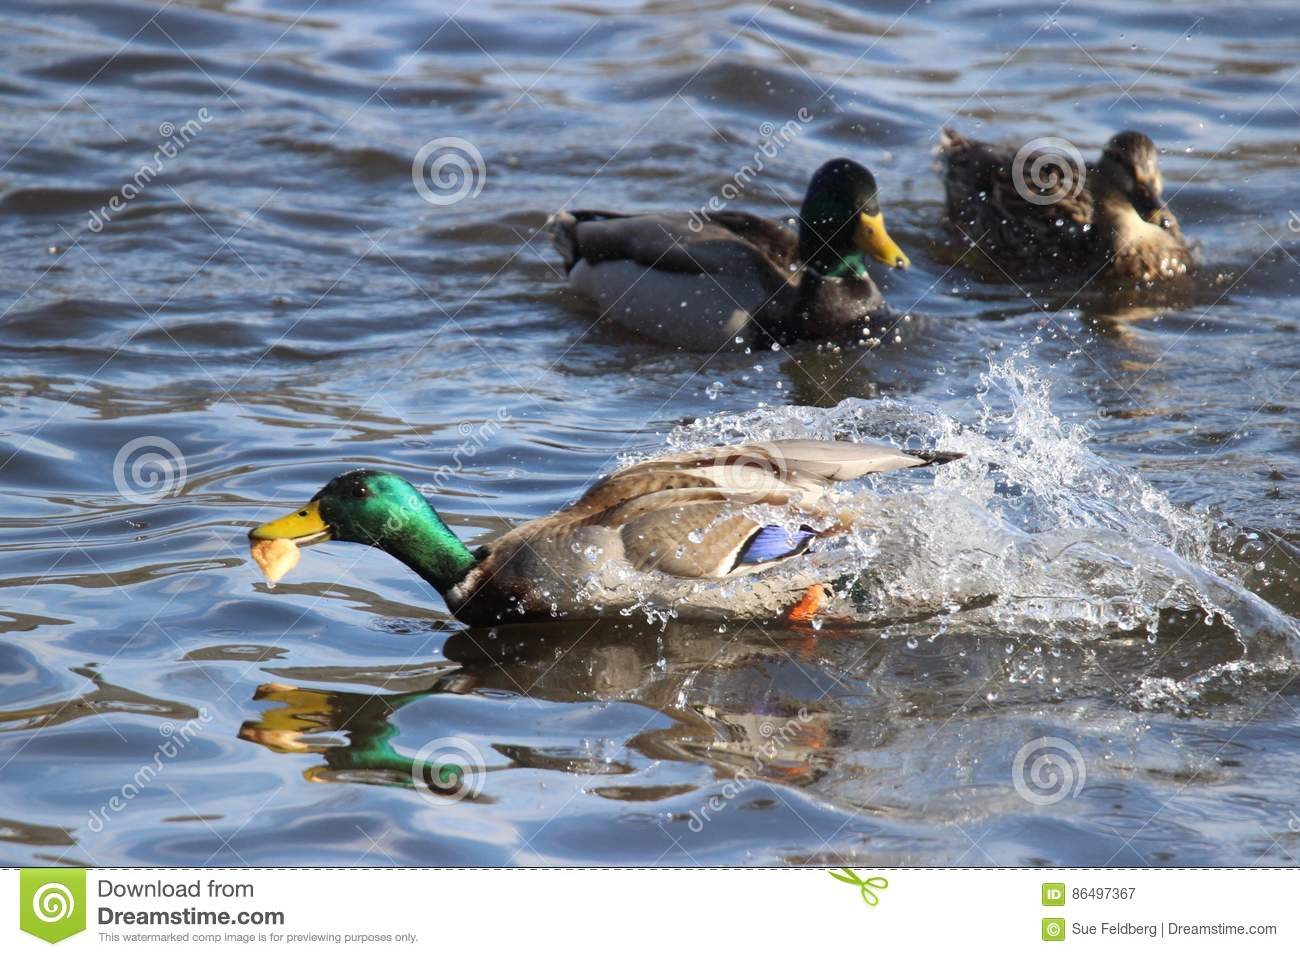 The Duck with the Bread